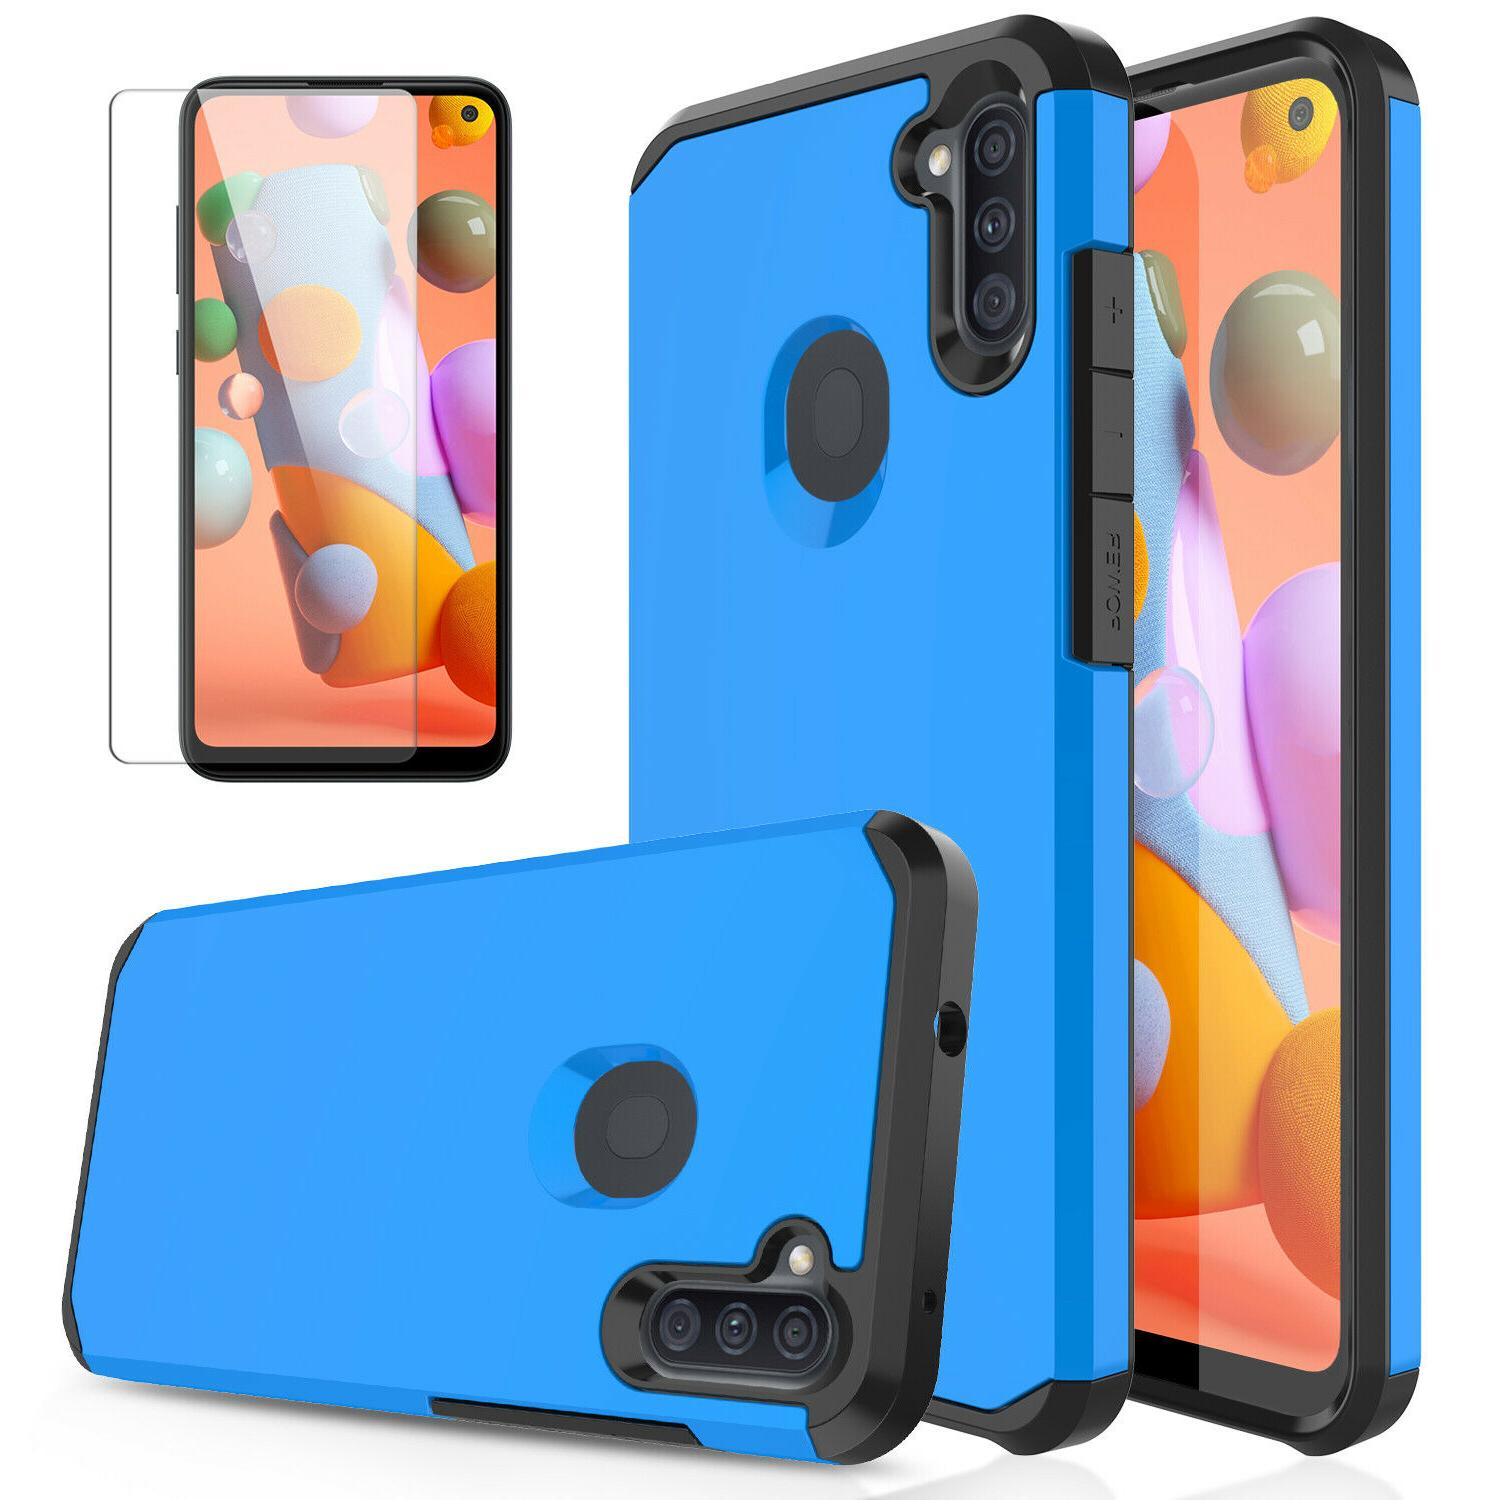 For Case Shockproof Cover/Screen Protector